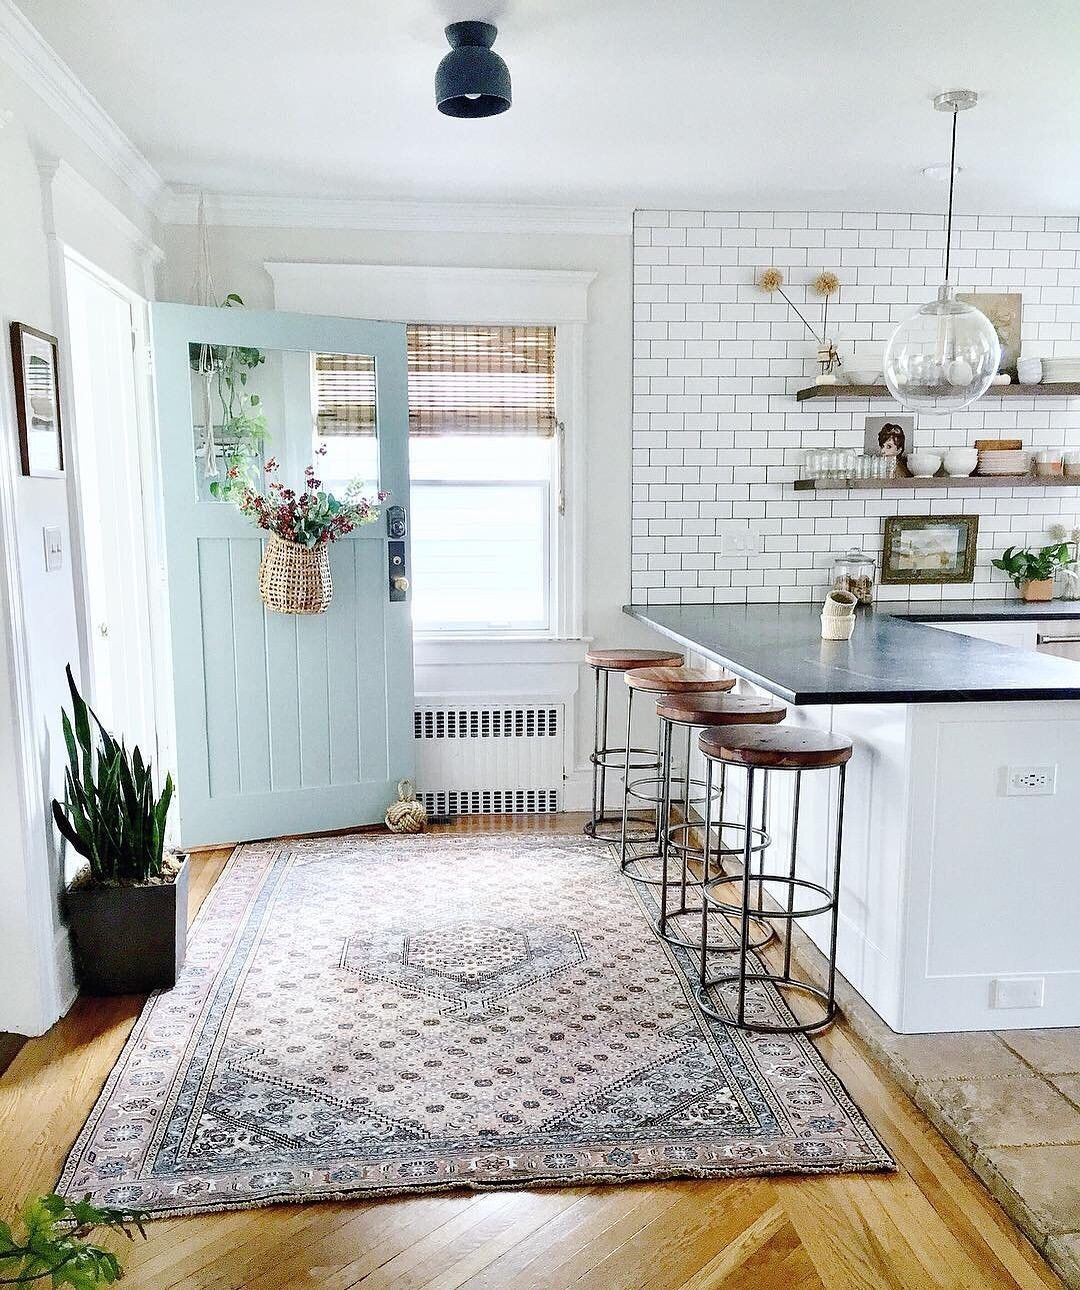 Apartmenttherapy S Instagram Post Has 40 7k Likes Home Home Kitchens Home Decor